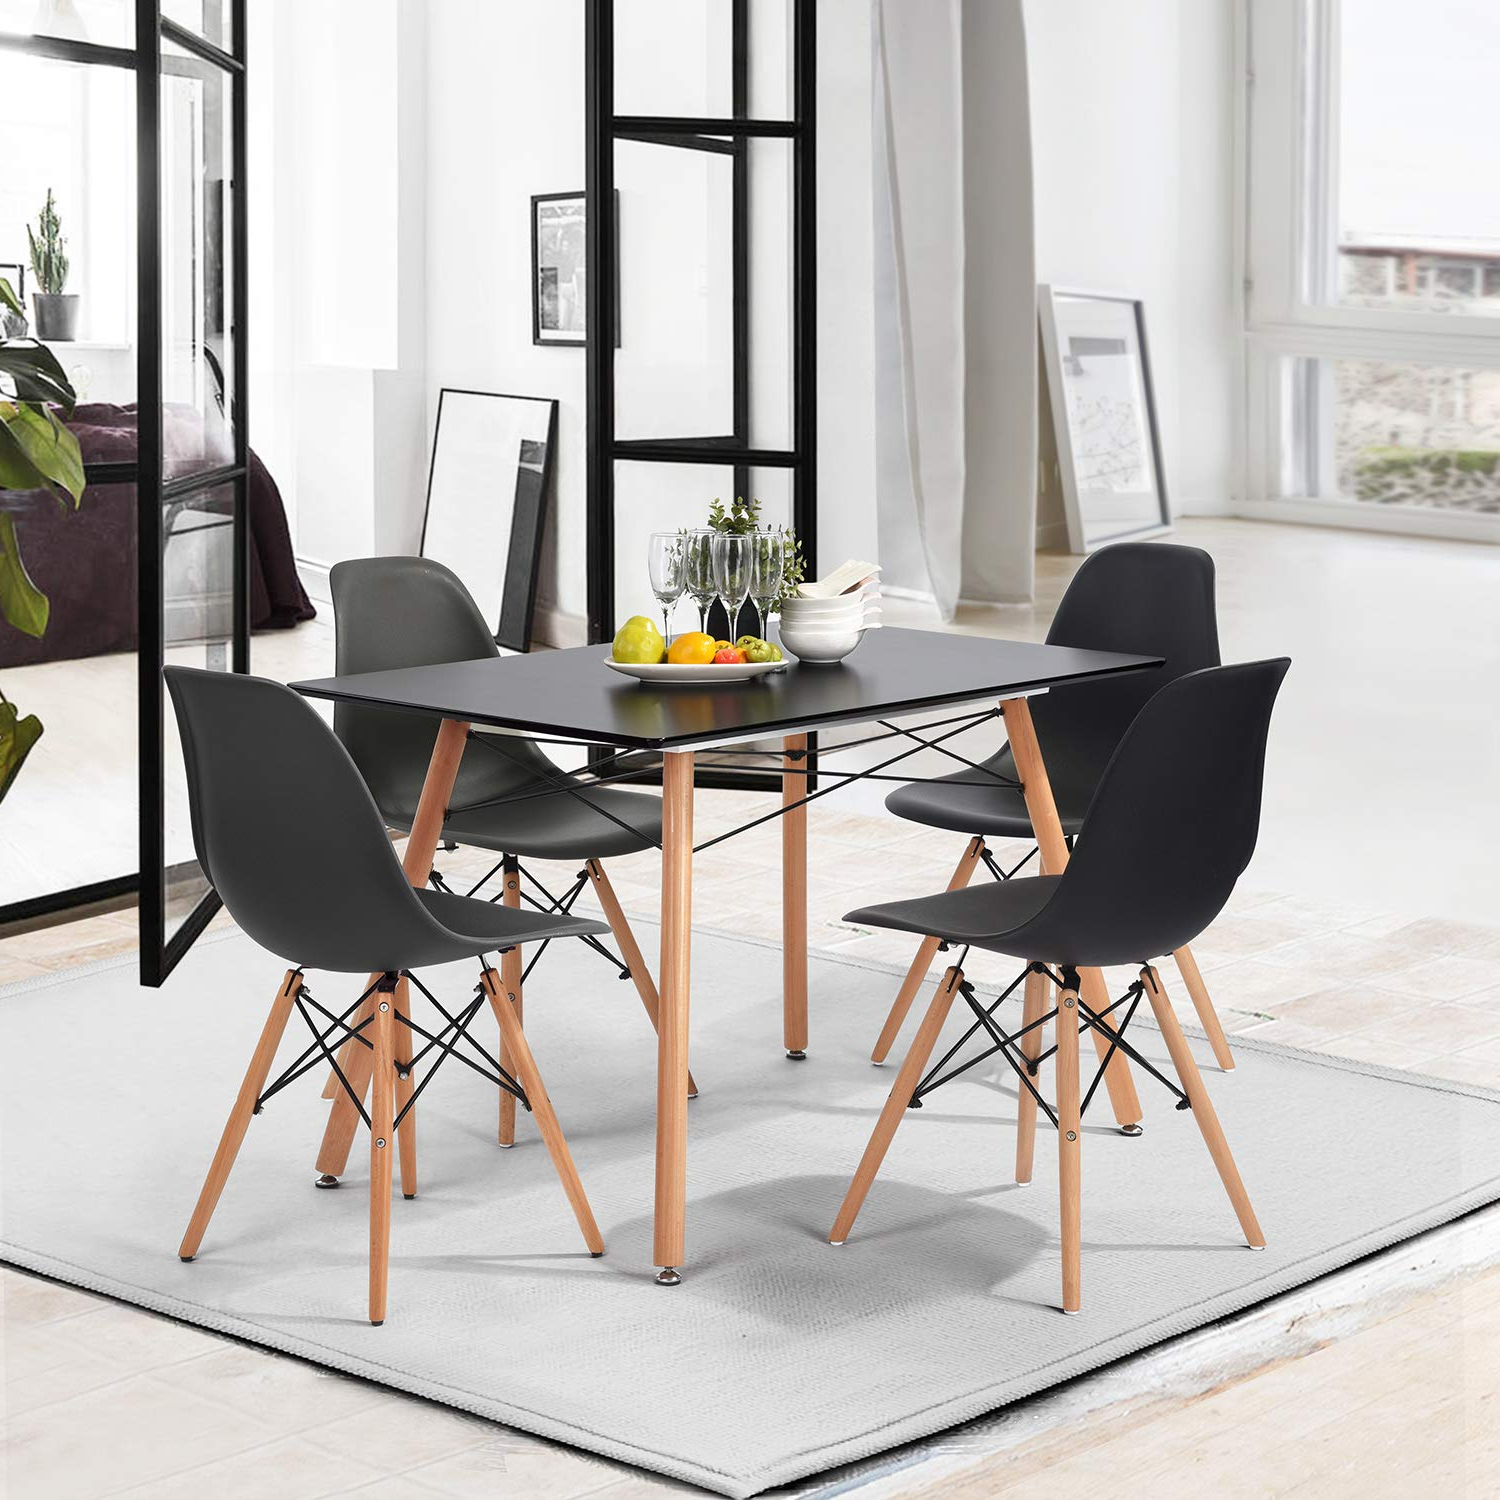 Best and Newest Mid Century Rectangular Top Dining Tables With Wood Legs with regard to Amazon - Homy Casa Inc 40 Rectangular Top With Wooden